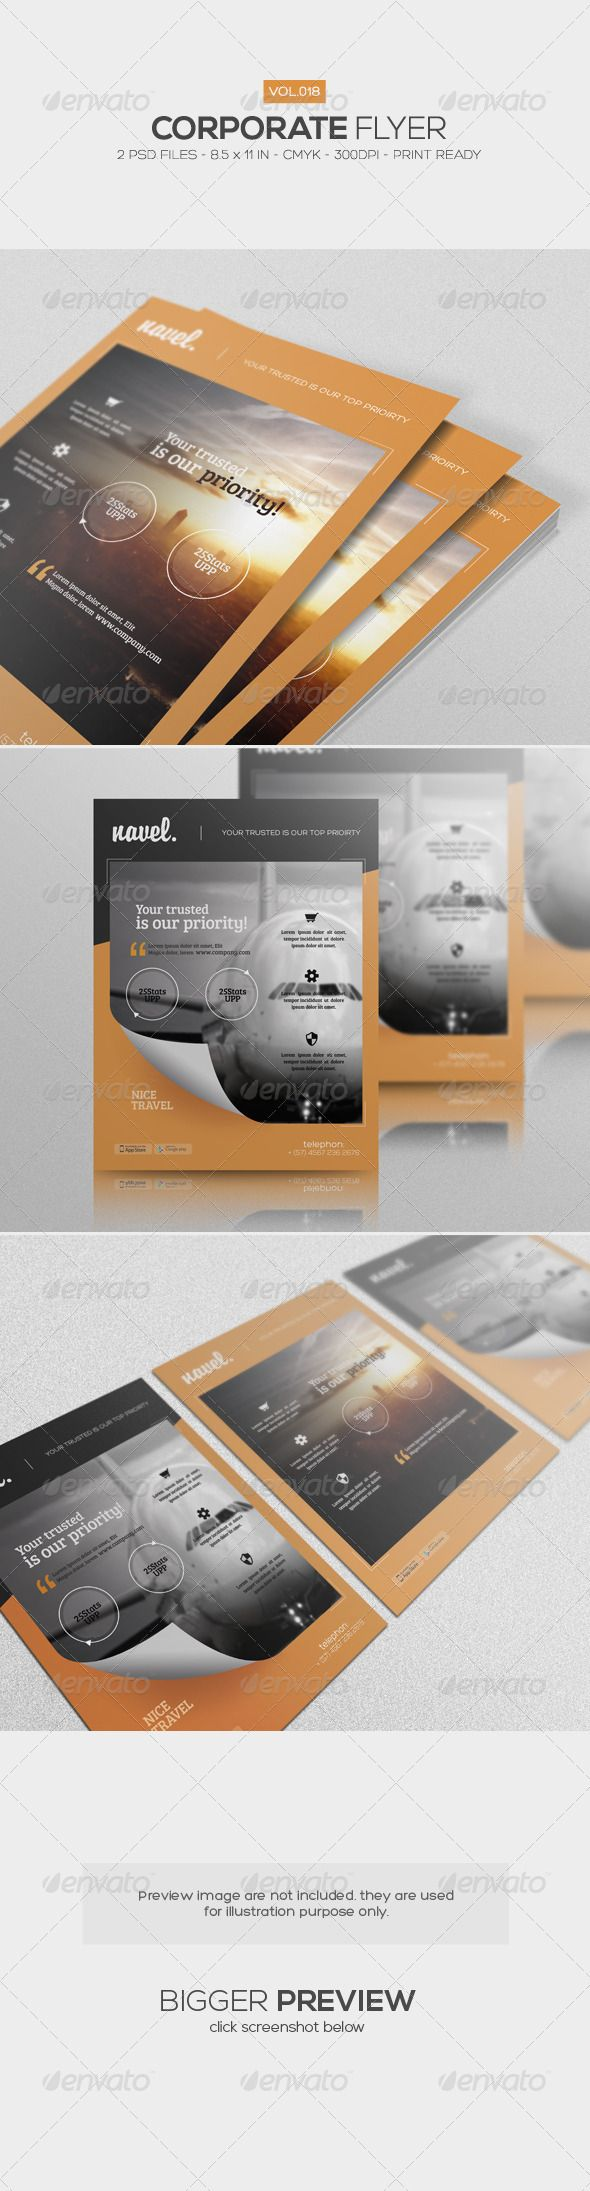 online flyers templates